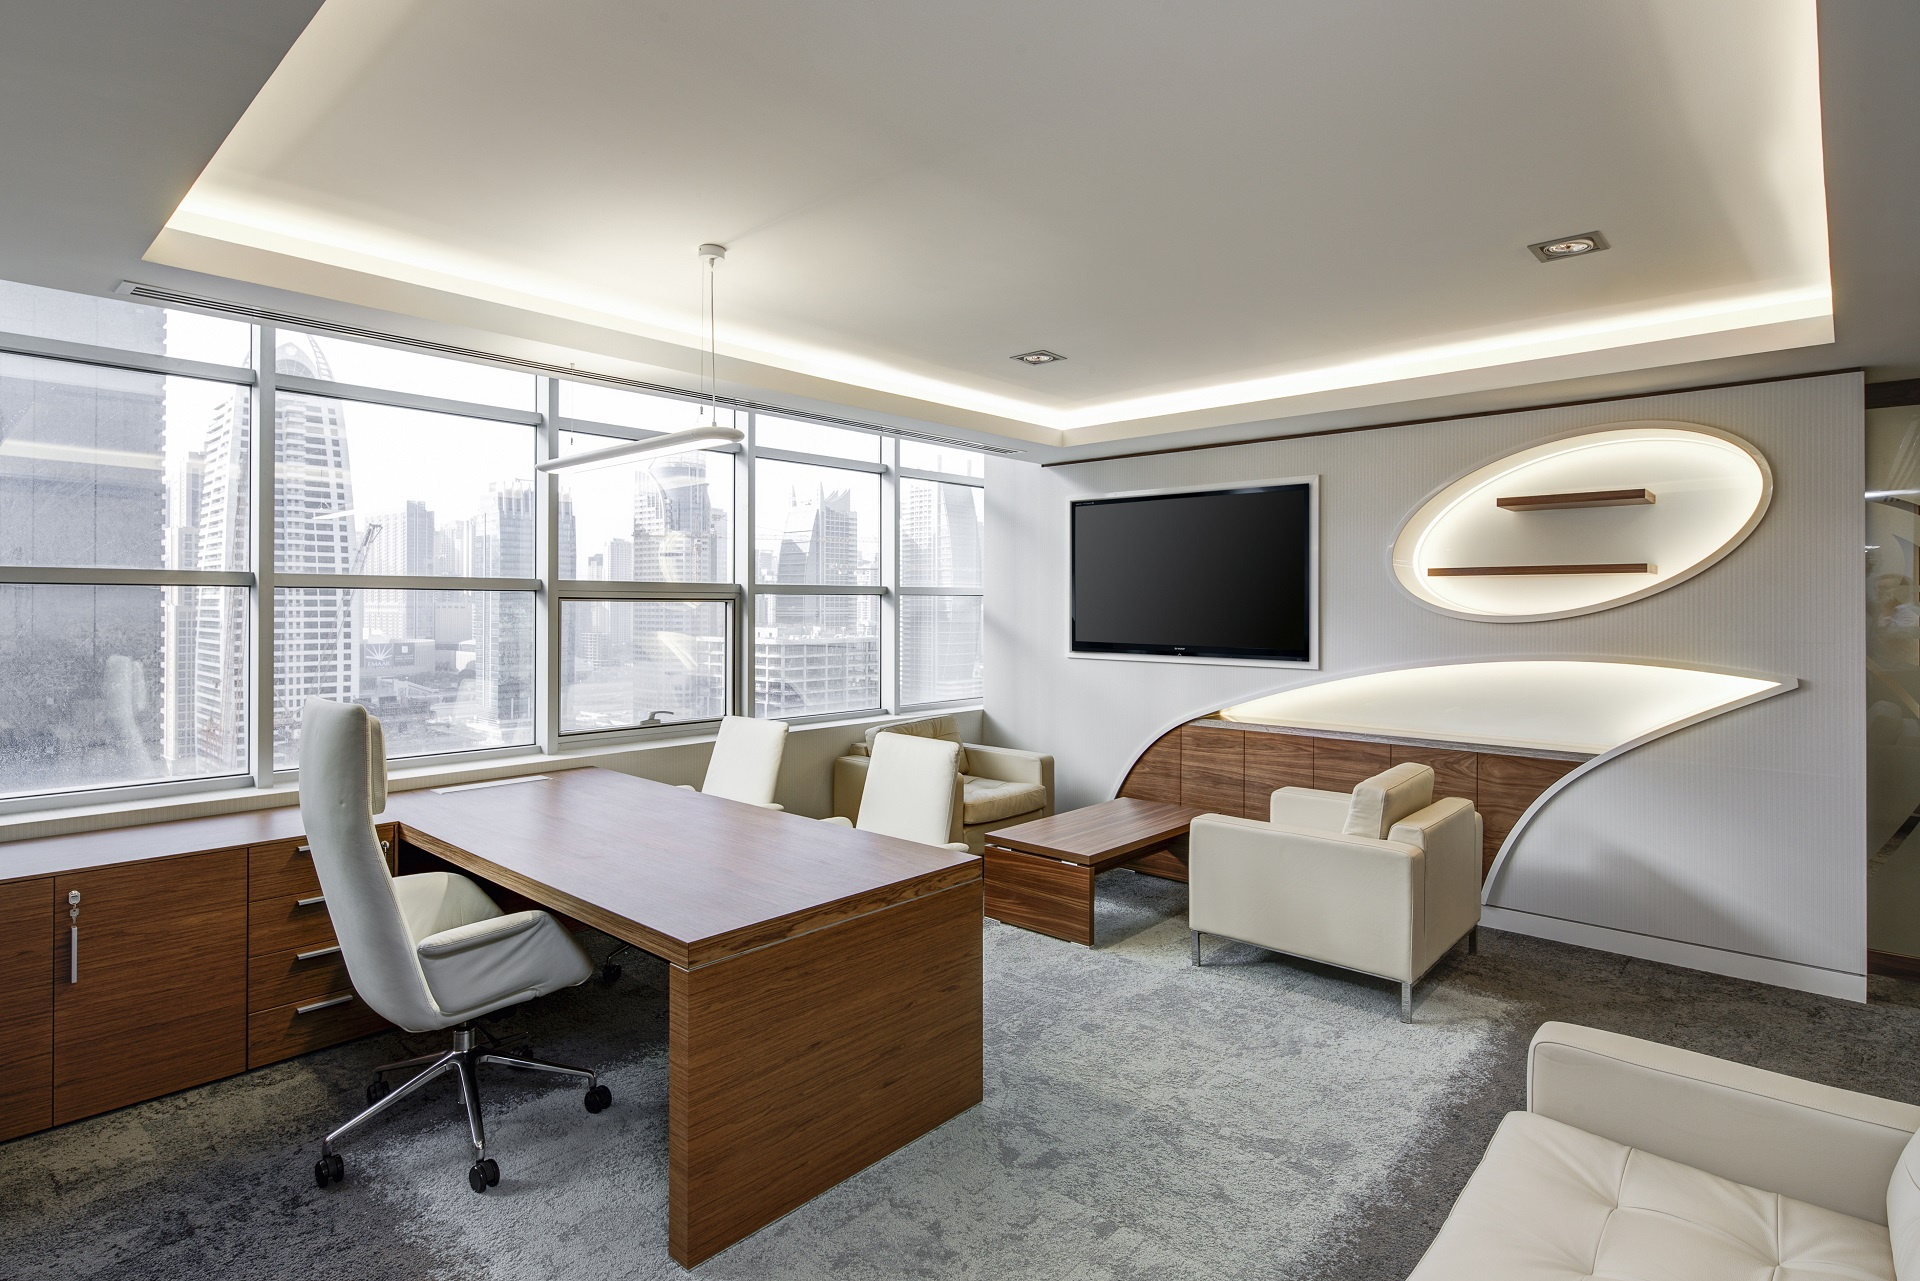 COVID Norms for Office Interiors - featured